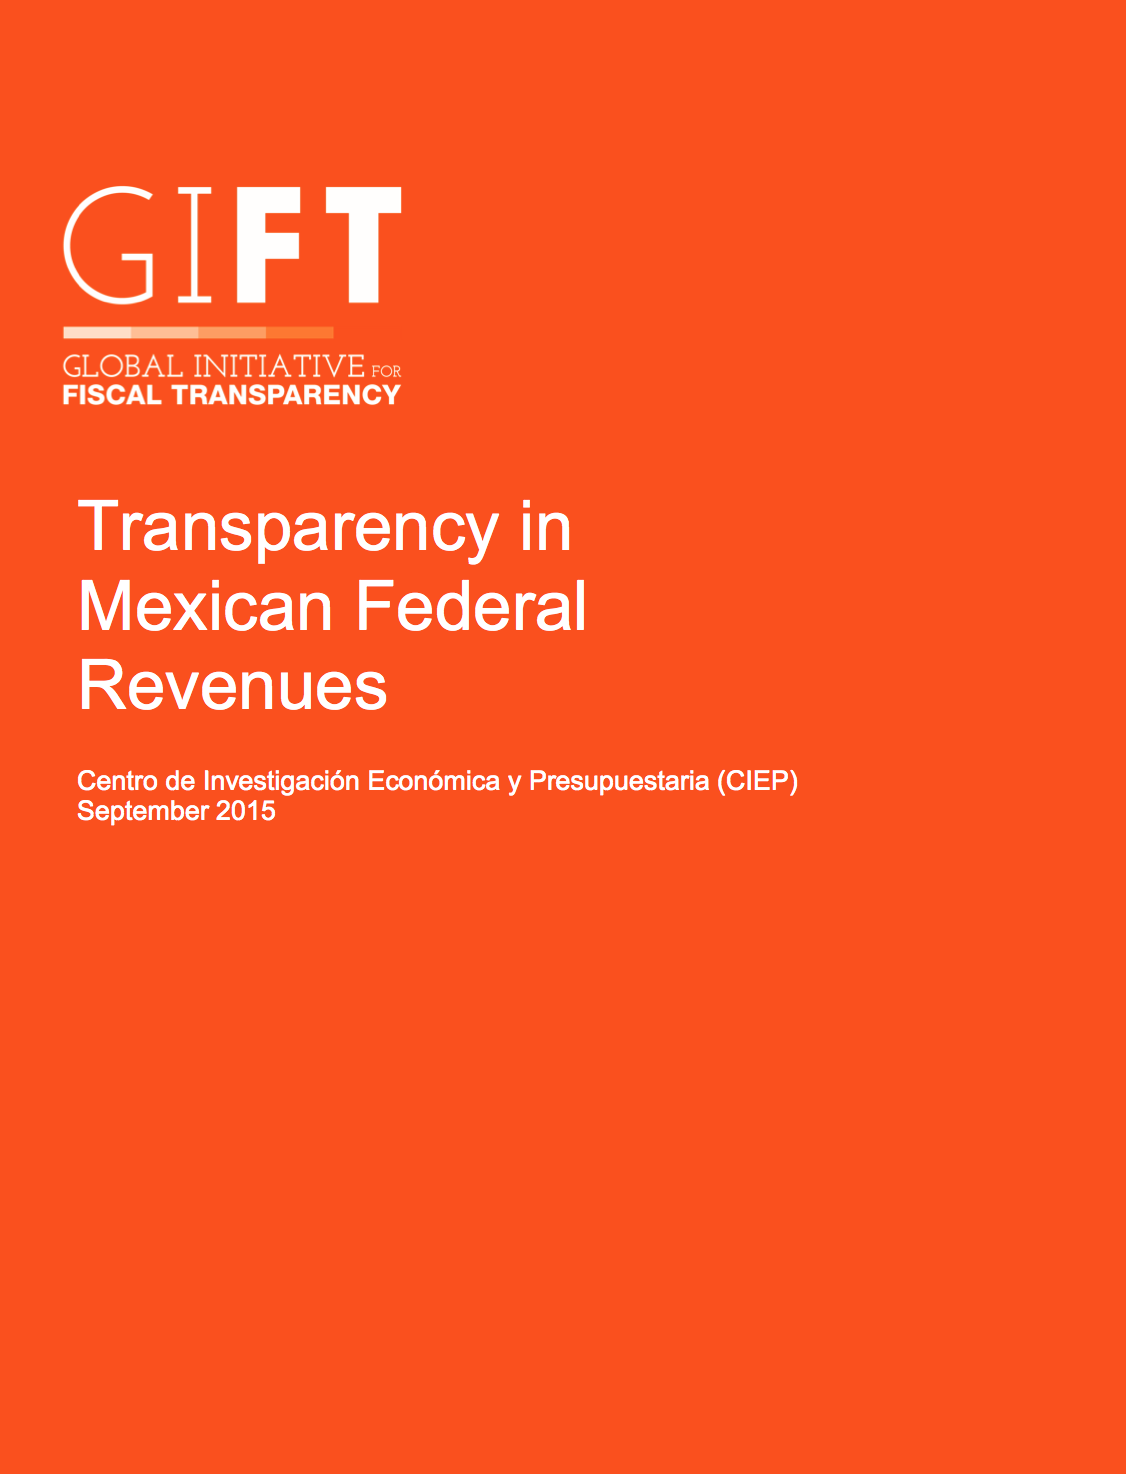 Transparency in Mexican Federal Revenues